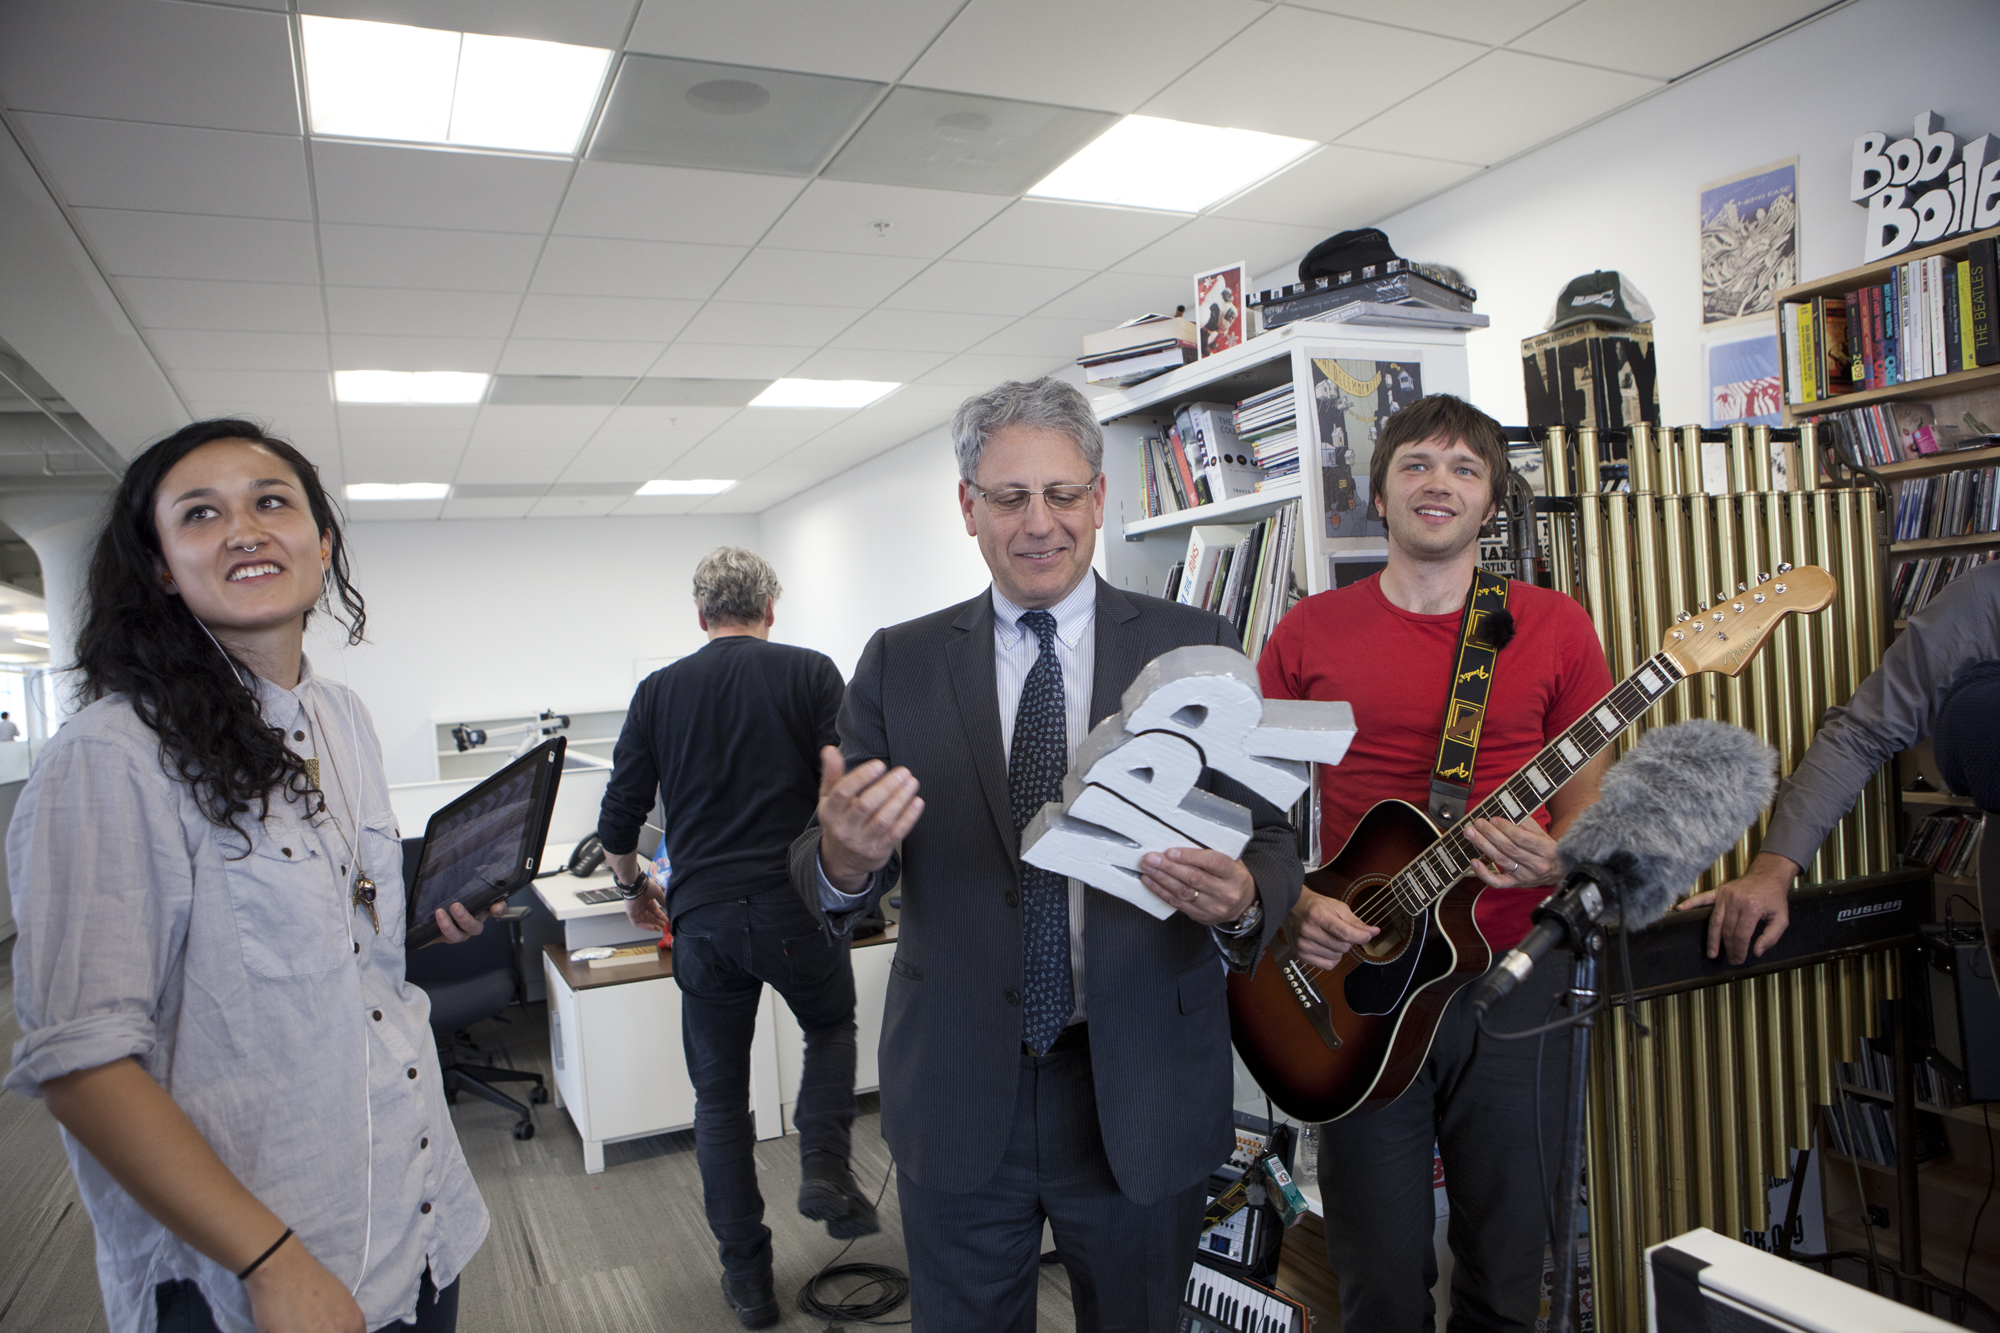 NPR President and CEO Gary E. Knell joins the in film-making fun at the new Tiny Desk space. Pictured are NPR Music's Mito Habe-Evans (left), Knell and OK Go guitarist Andy Ross.